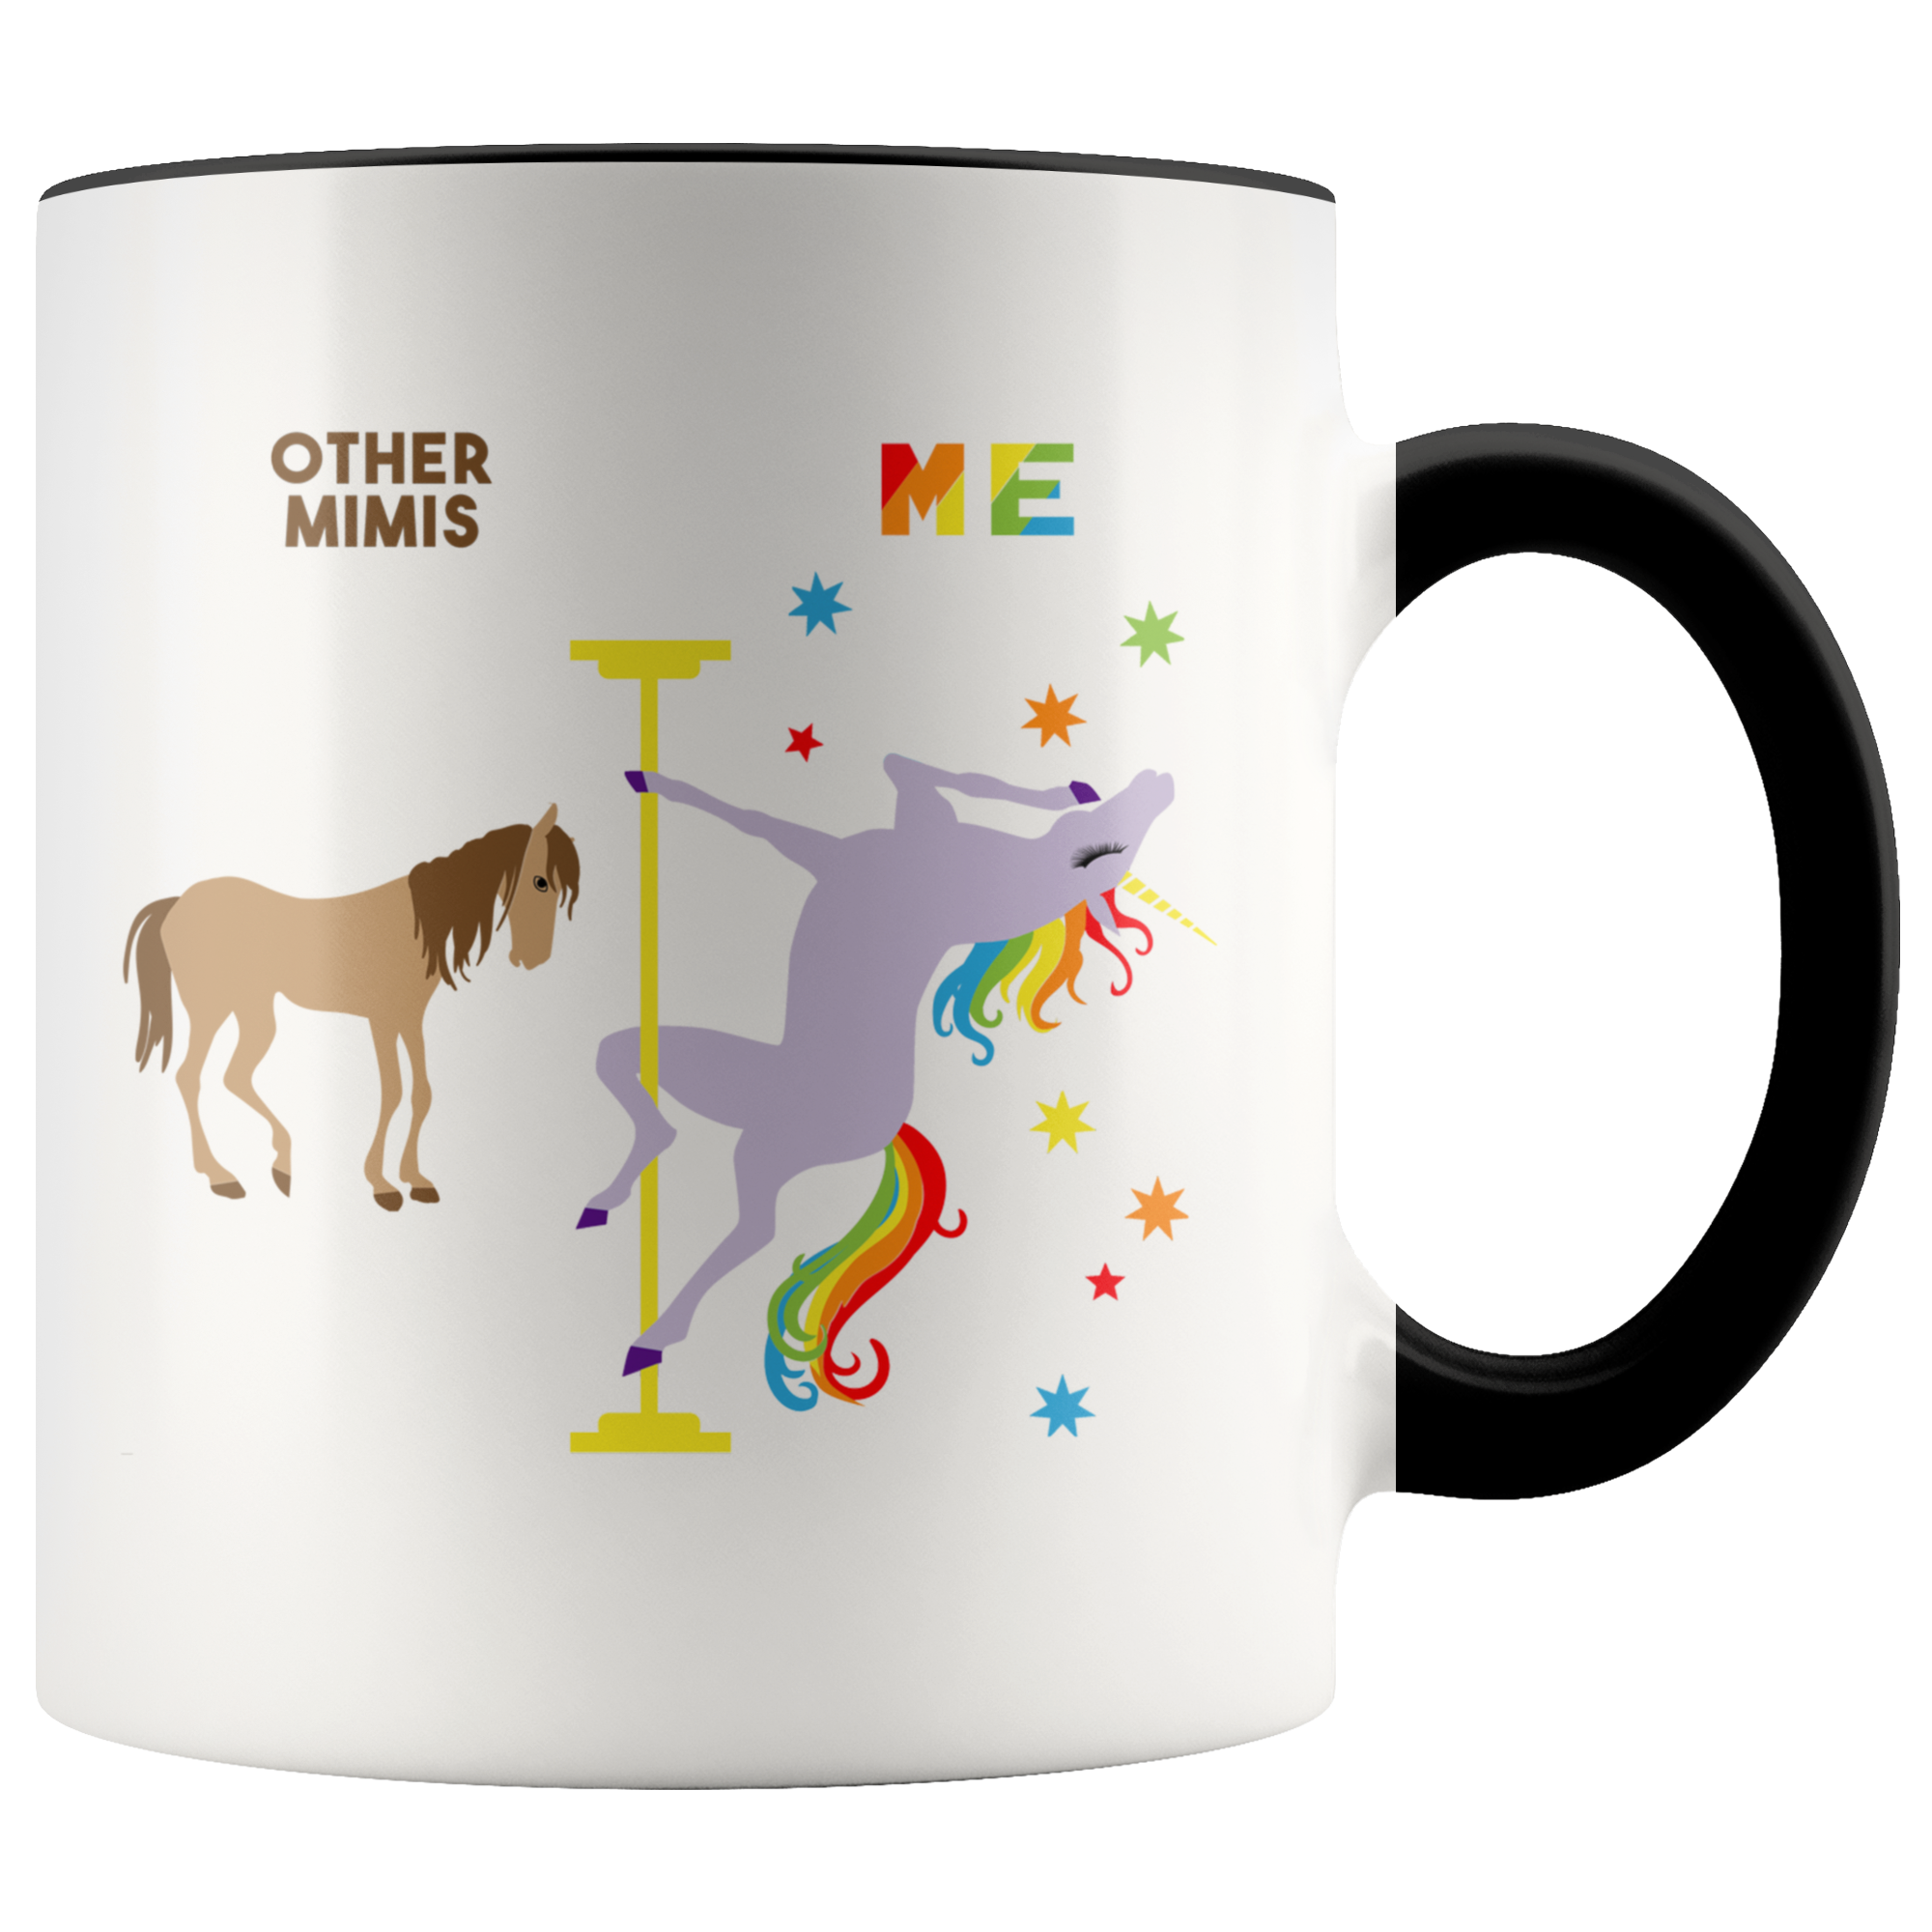 Mimi Gift for Mimi Mug Christmas Gift for Grandma Gift for Grandma Mug Gift for Grandmother Gift Grandma Coffee Cup Pole Dancing Unicorn